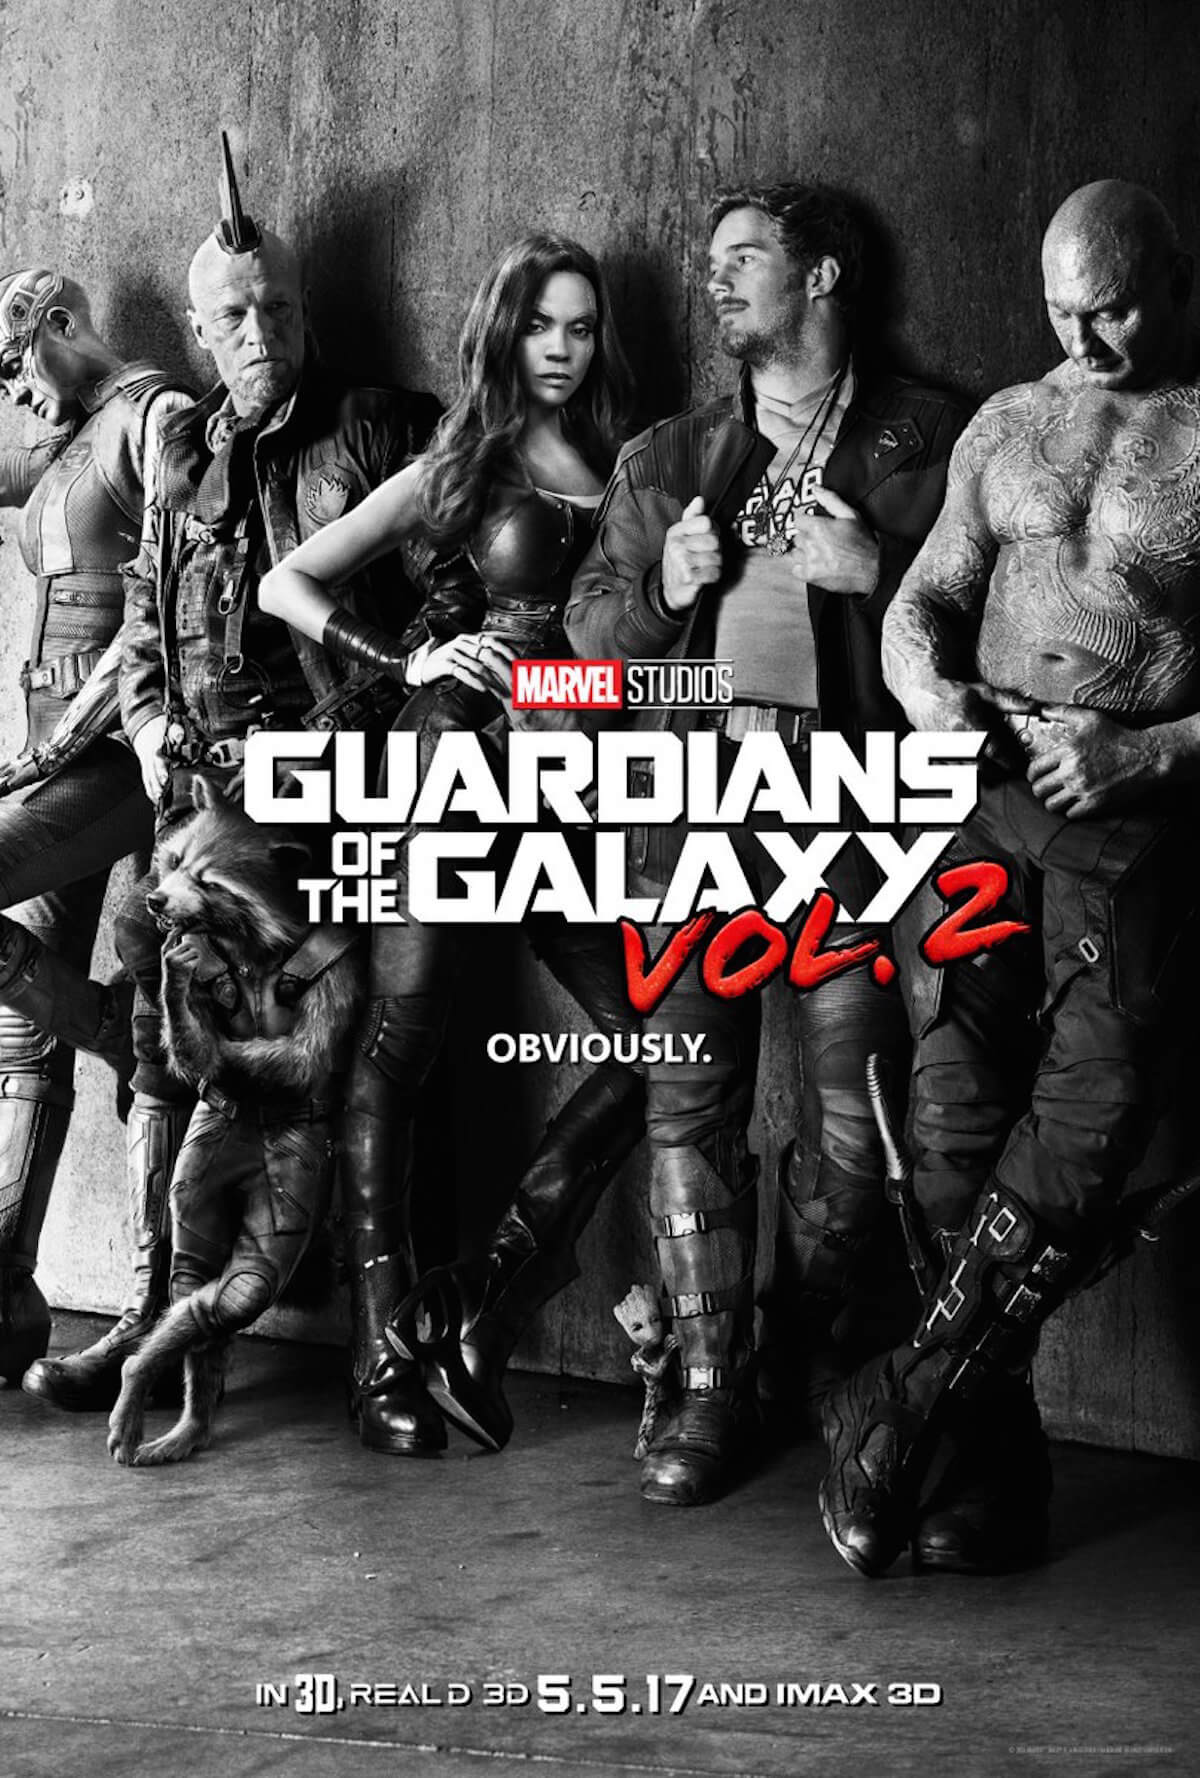 Guardians of the galaxy 2 poster 2